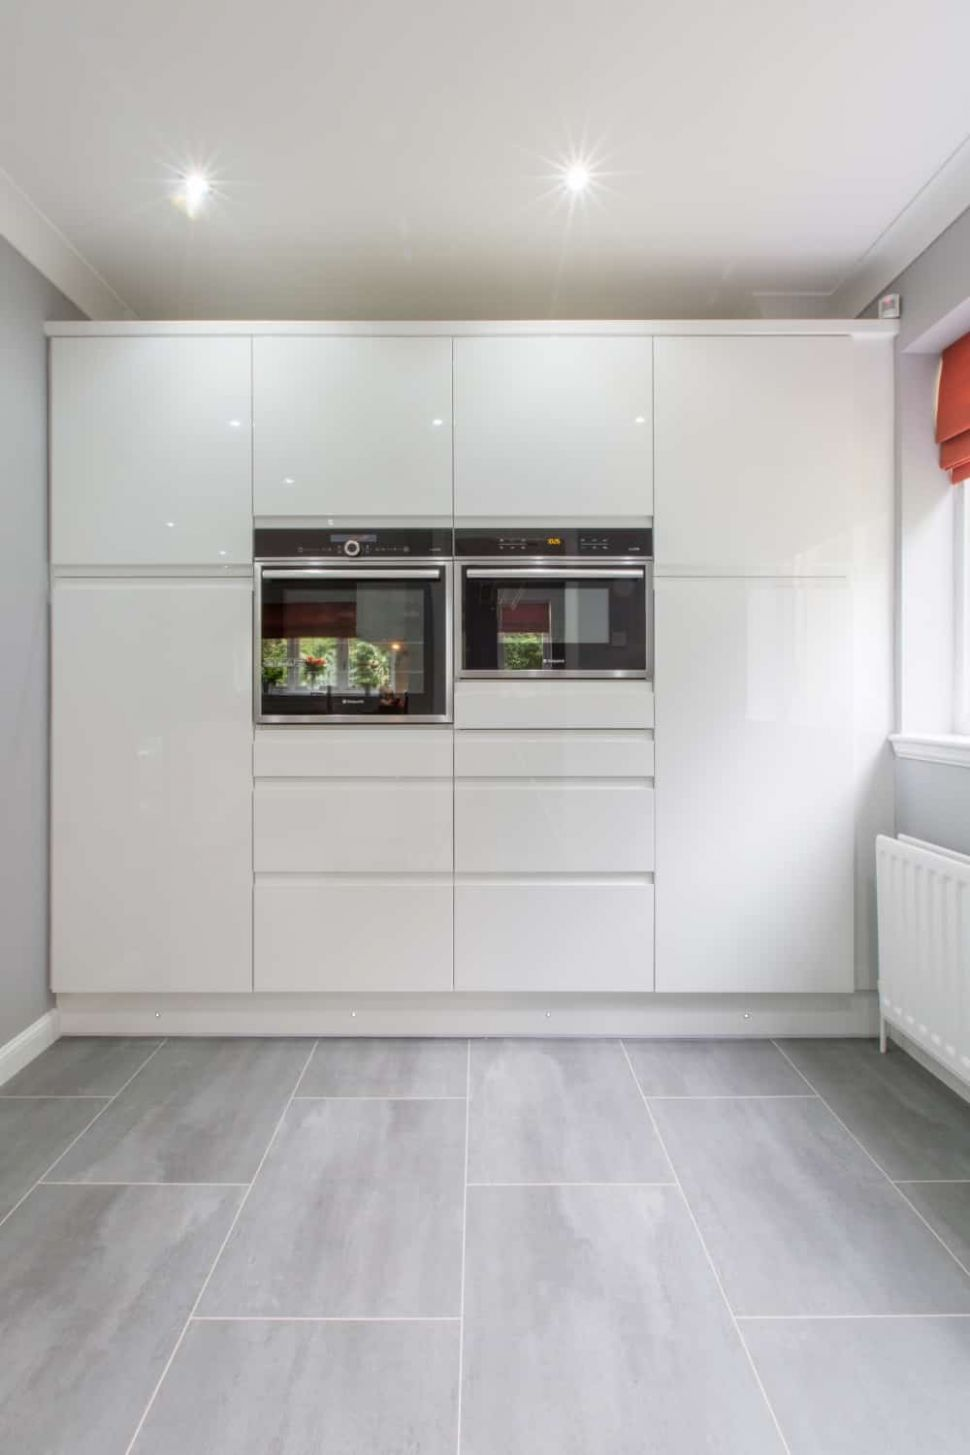 Home Architec Ideas: White And Grey Gloss Kitchen Ideas - kitchen ideas high gloss